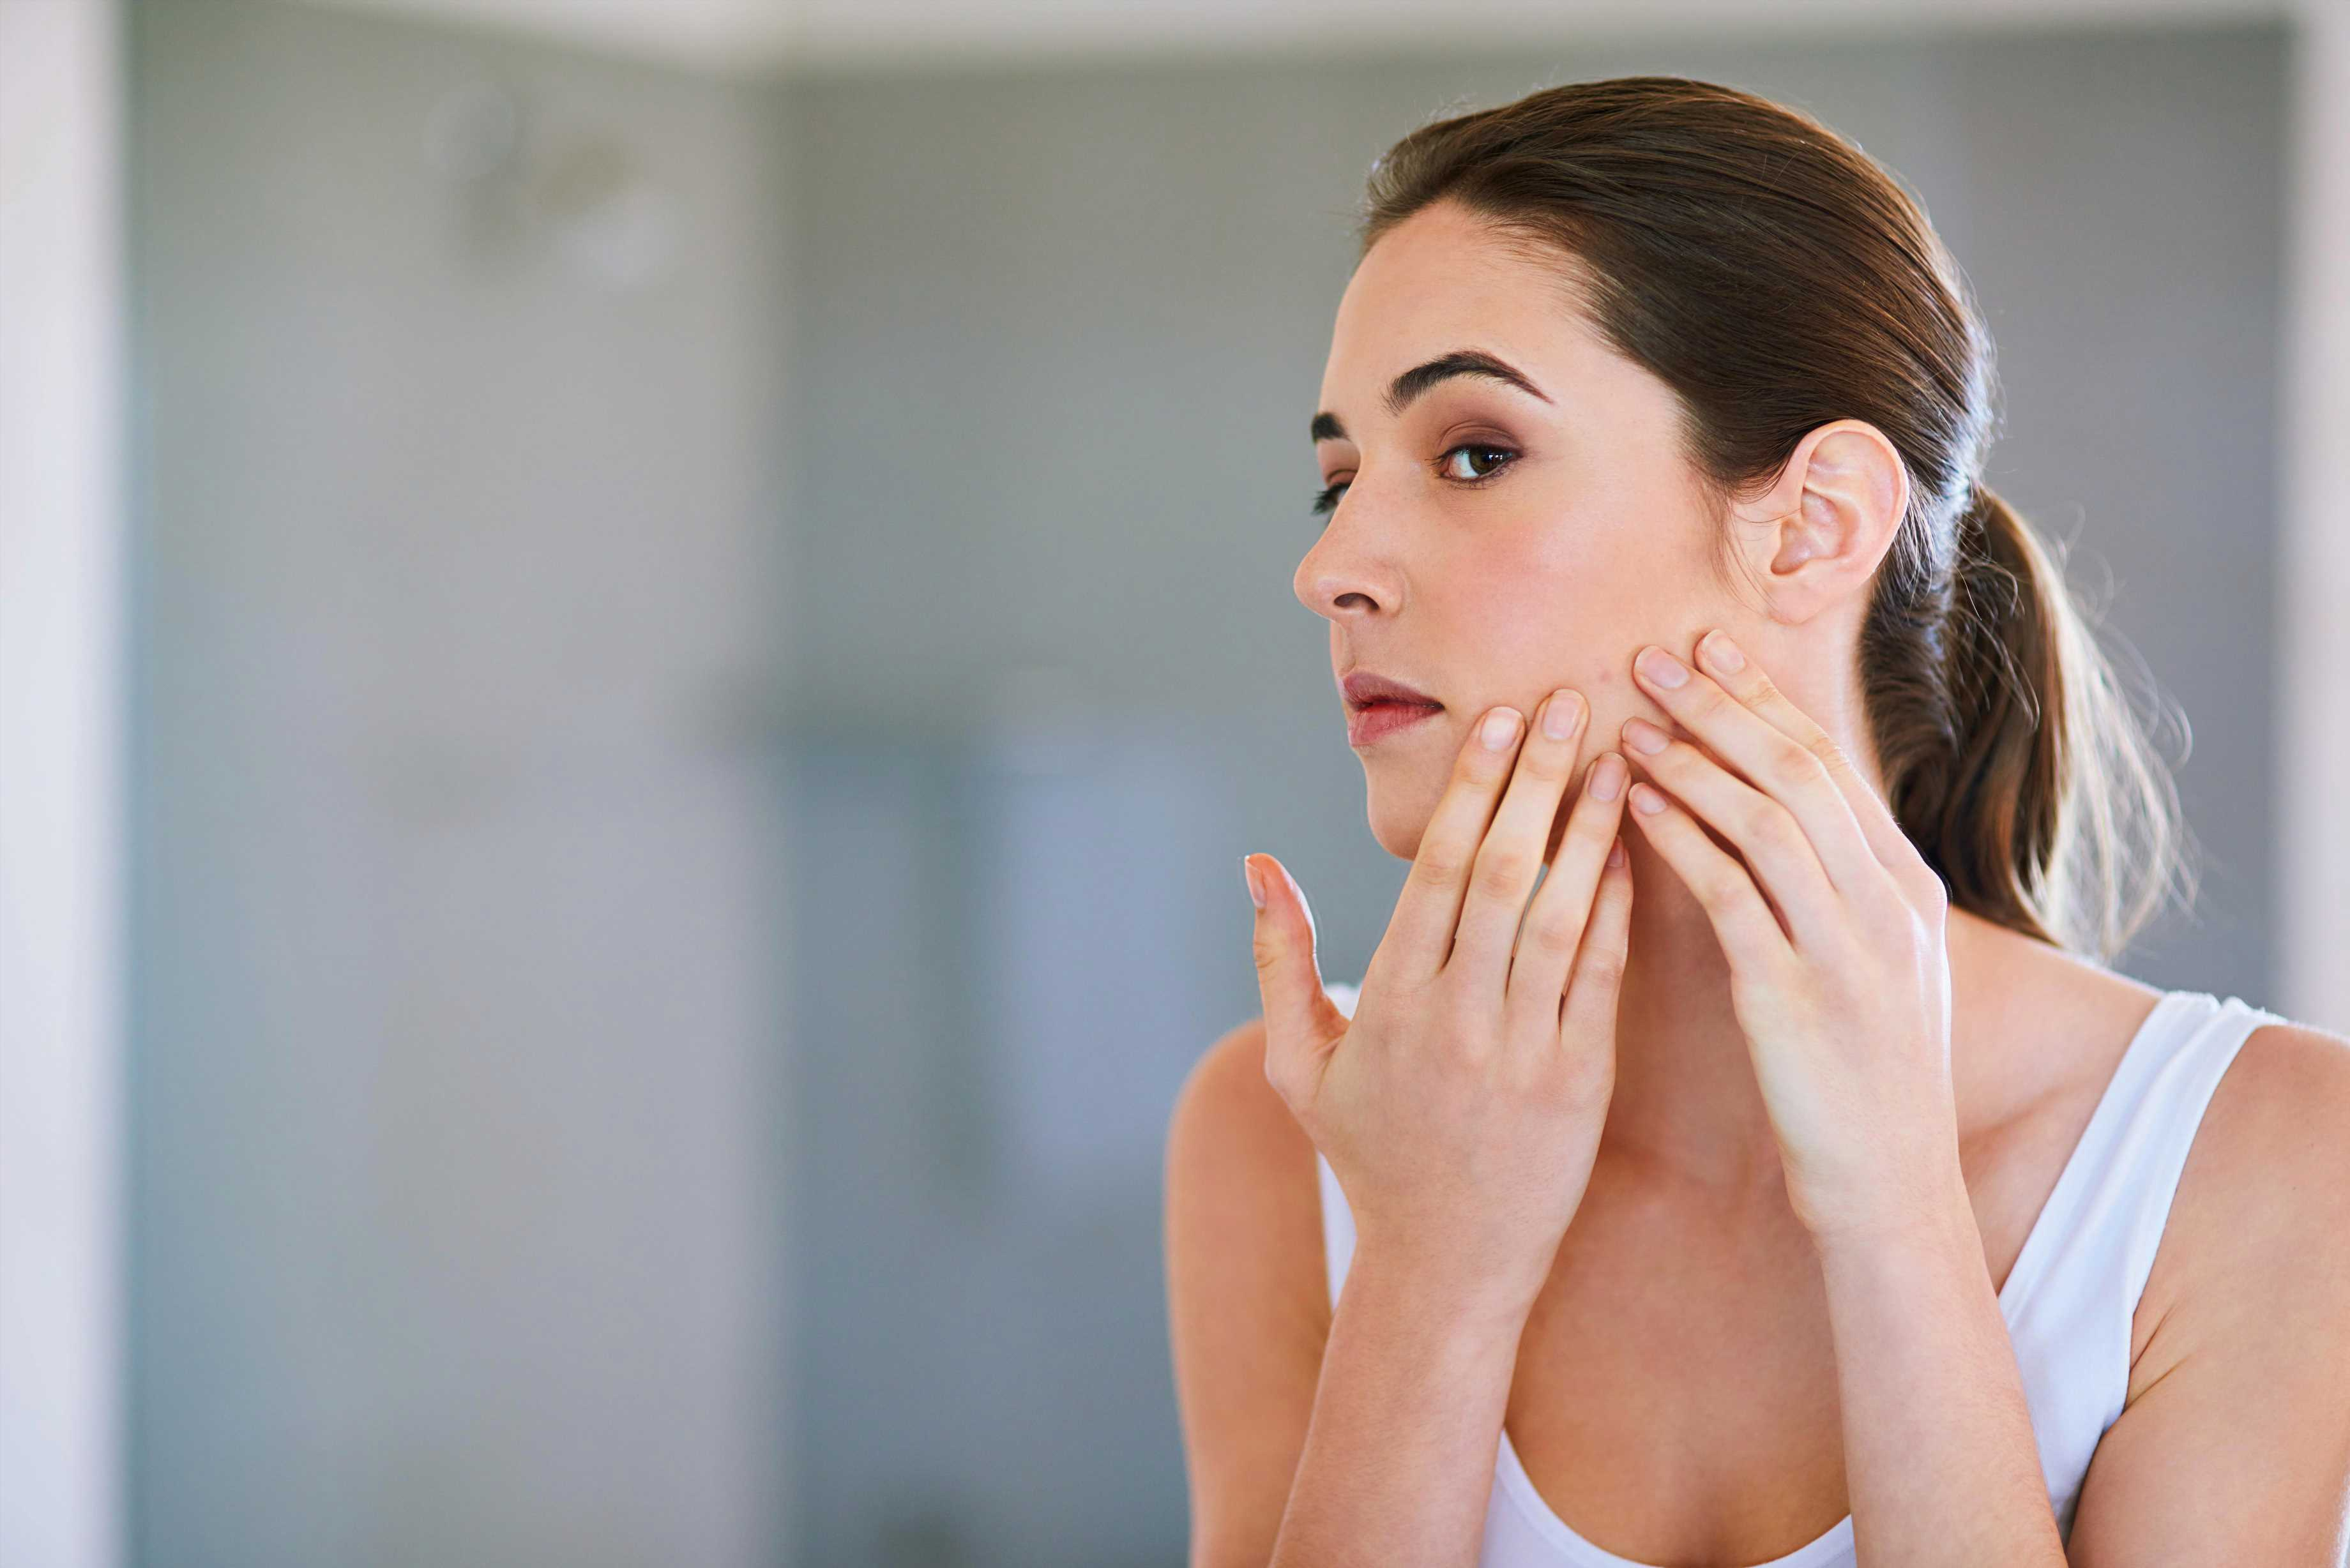 Six surprising symptoms of polycystic ovary syndrome you should never ignore – from acne to sleep apnoea and hair loss